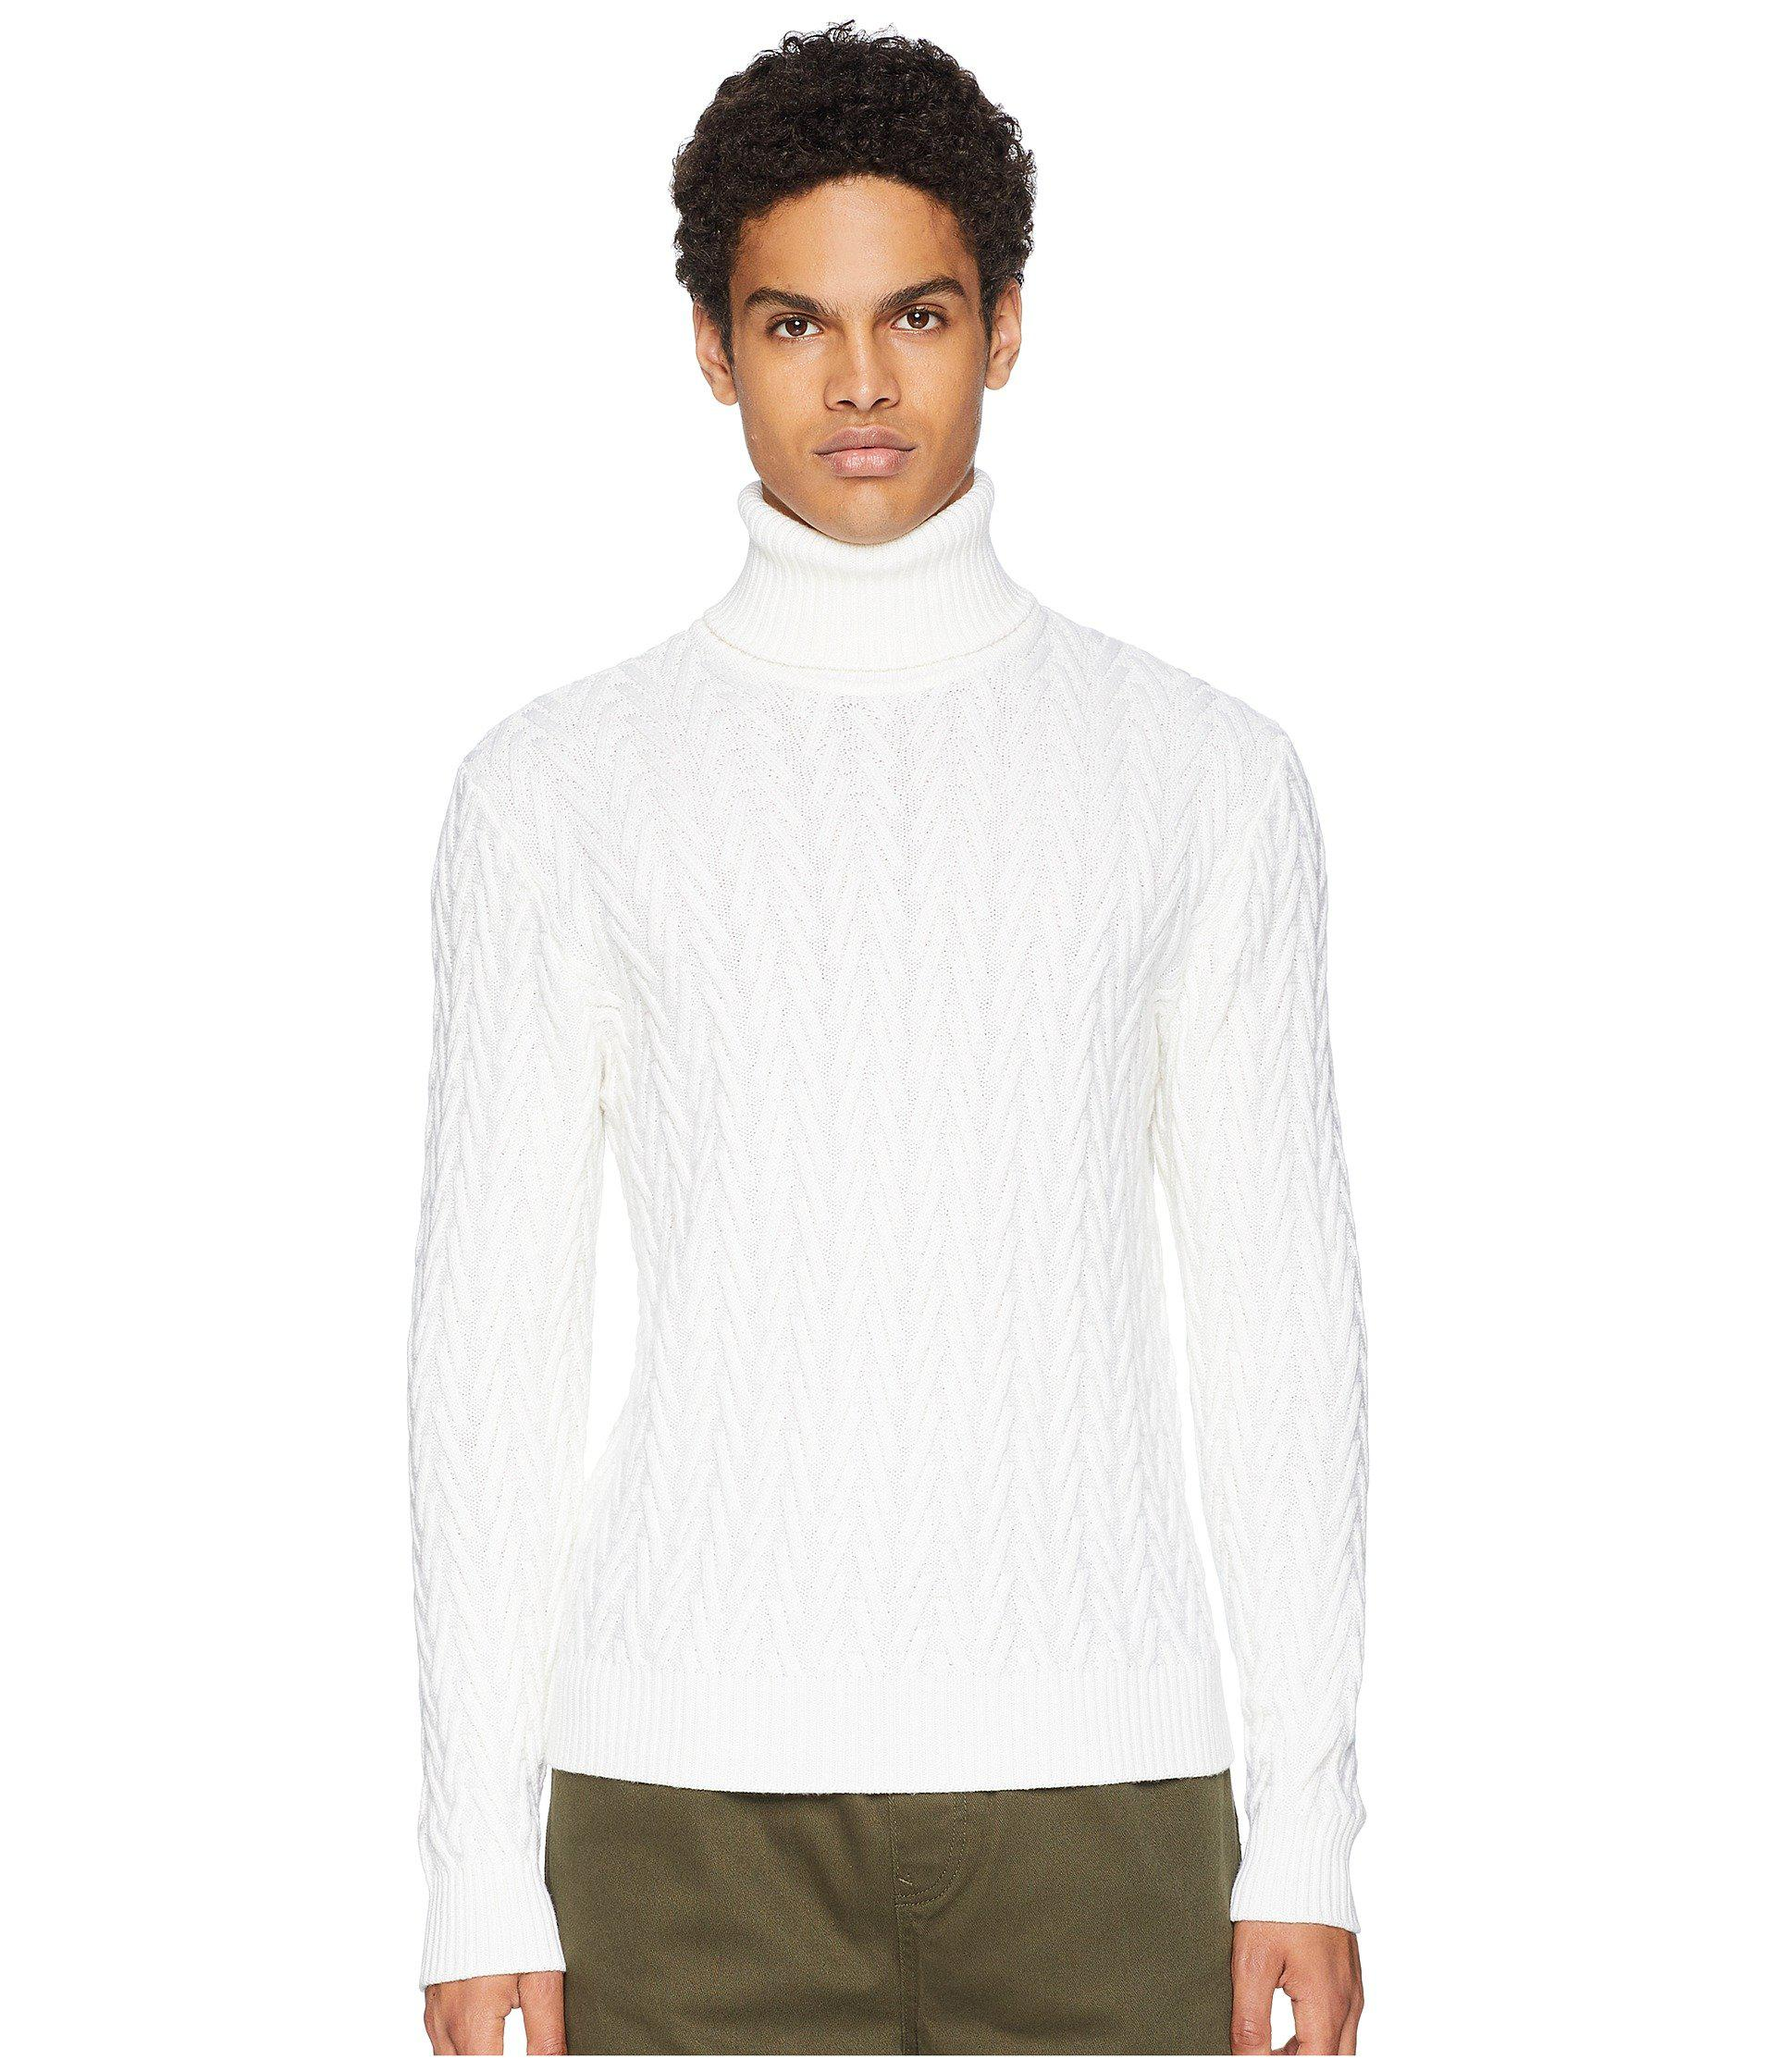 Lyst Eleventy Textured Turtleneck Sweater White Mens Sweater In